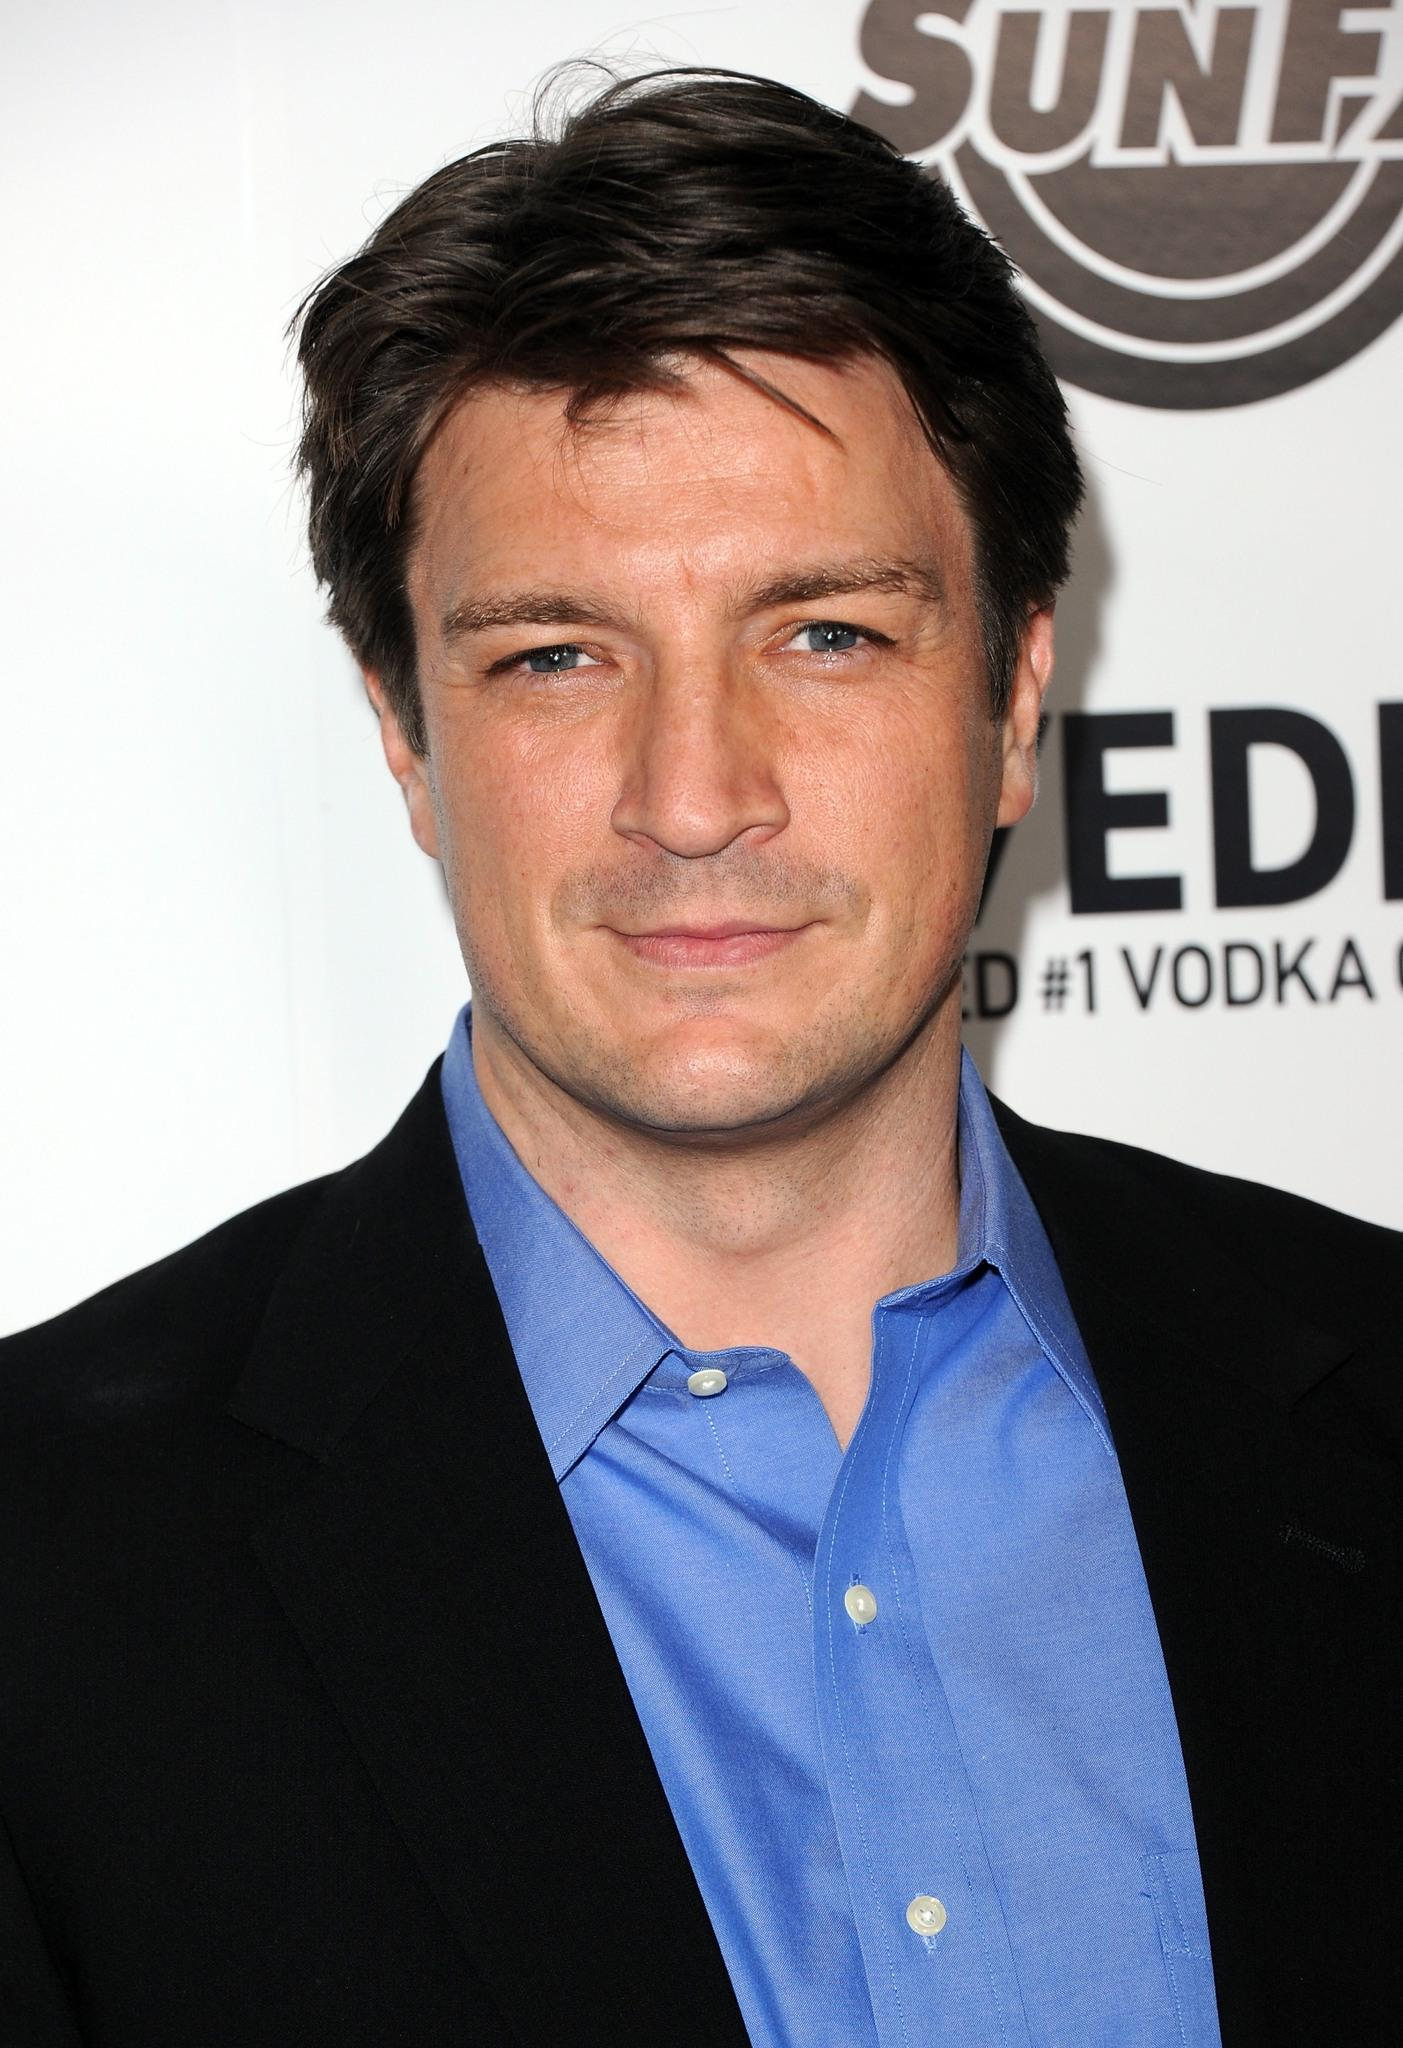 The 46-year old son of father Bob Fillion and mother Cookie Fillion, 187 cm tall Nathan Fillion in 2017 photo